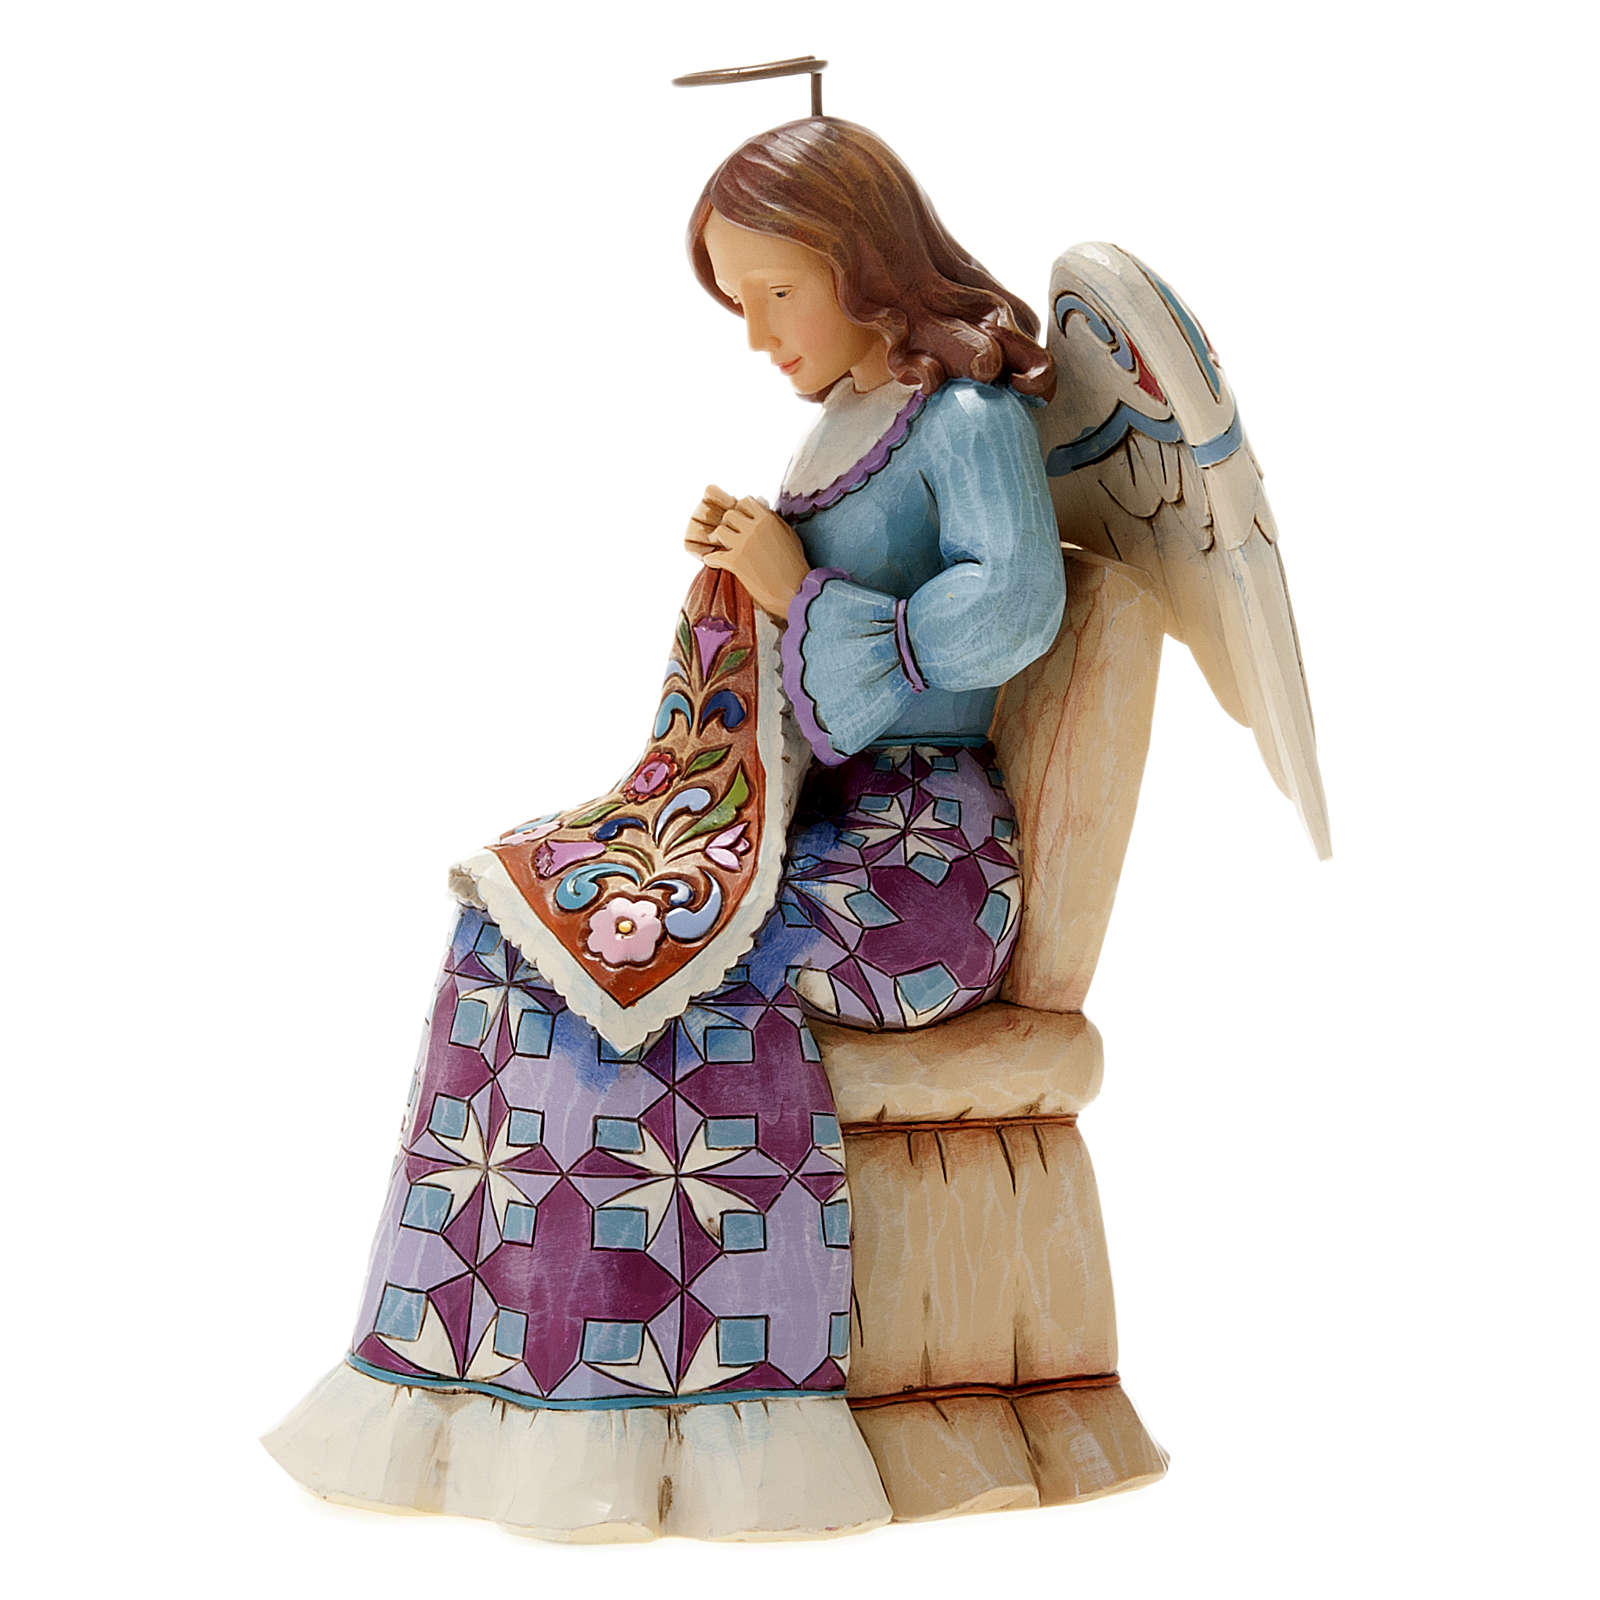 Angelo che cuce (Sewing Angel) 4